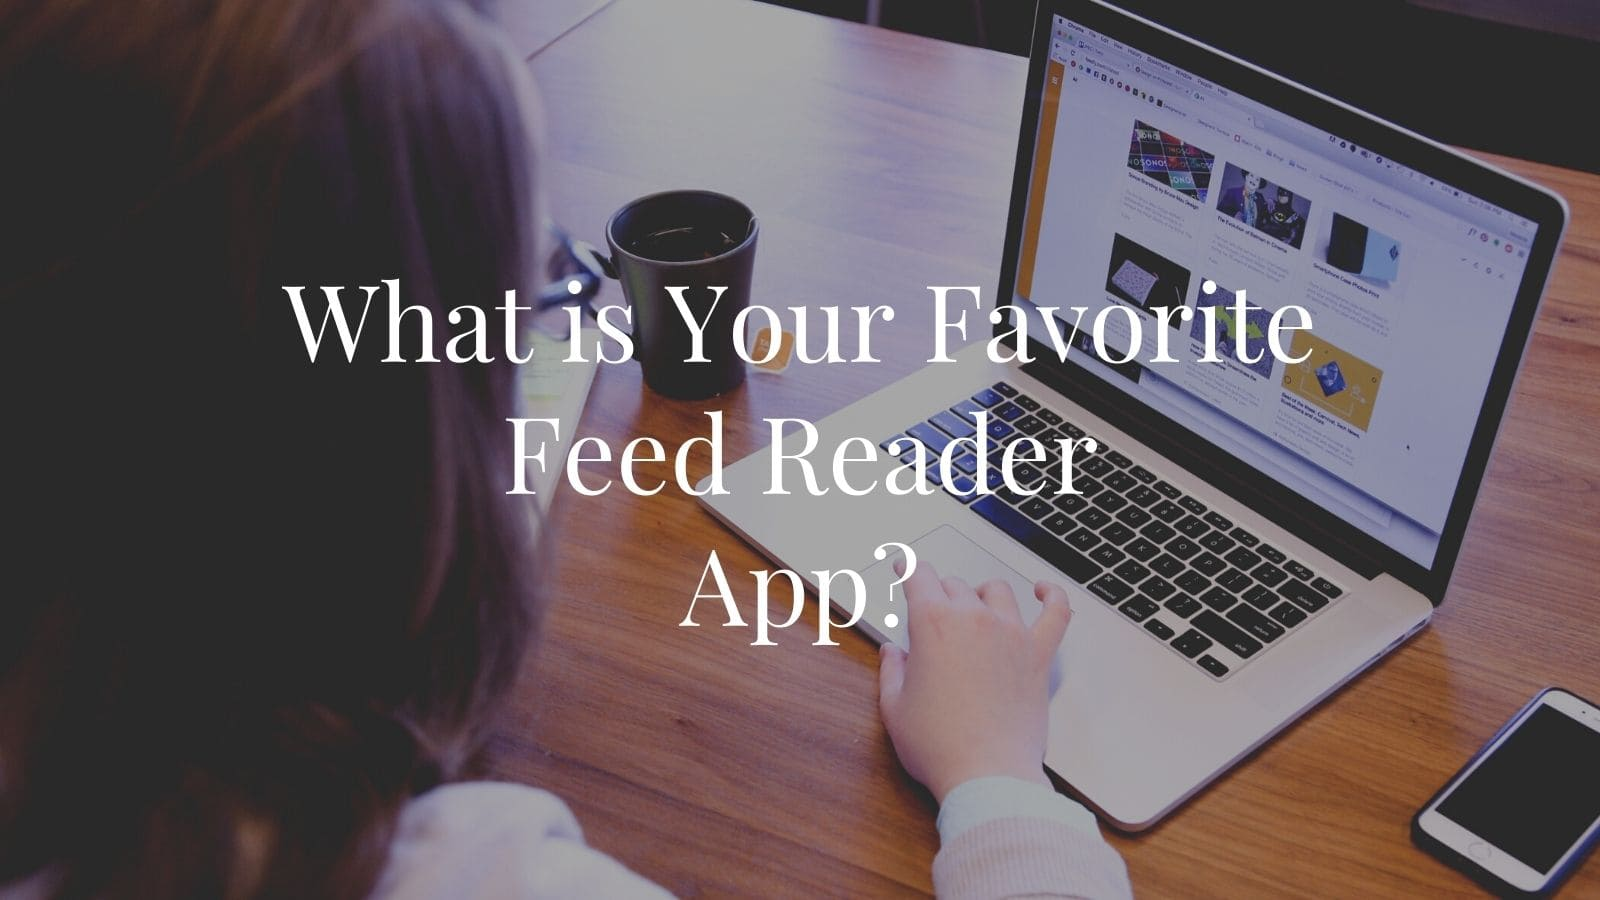 What is Your Favorite Feed Reader App?